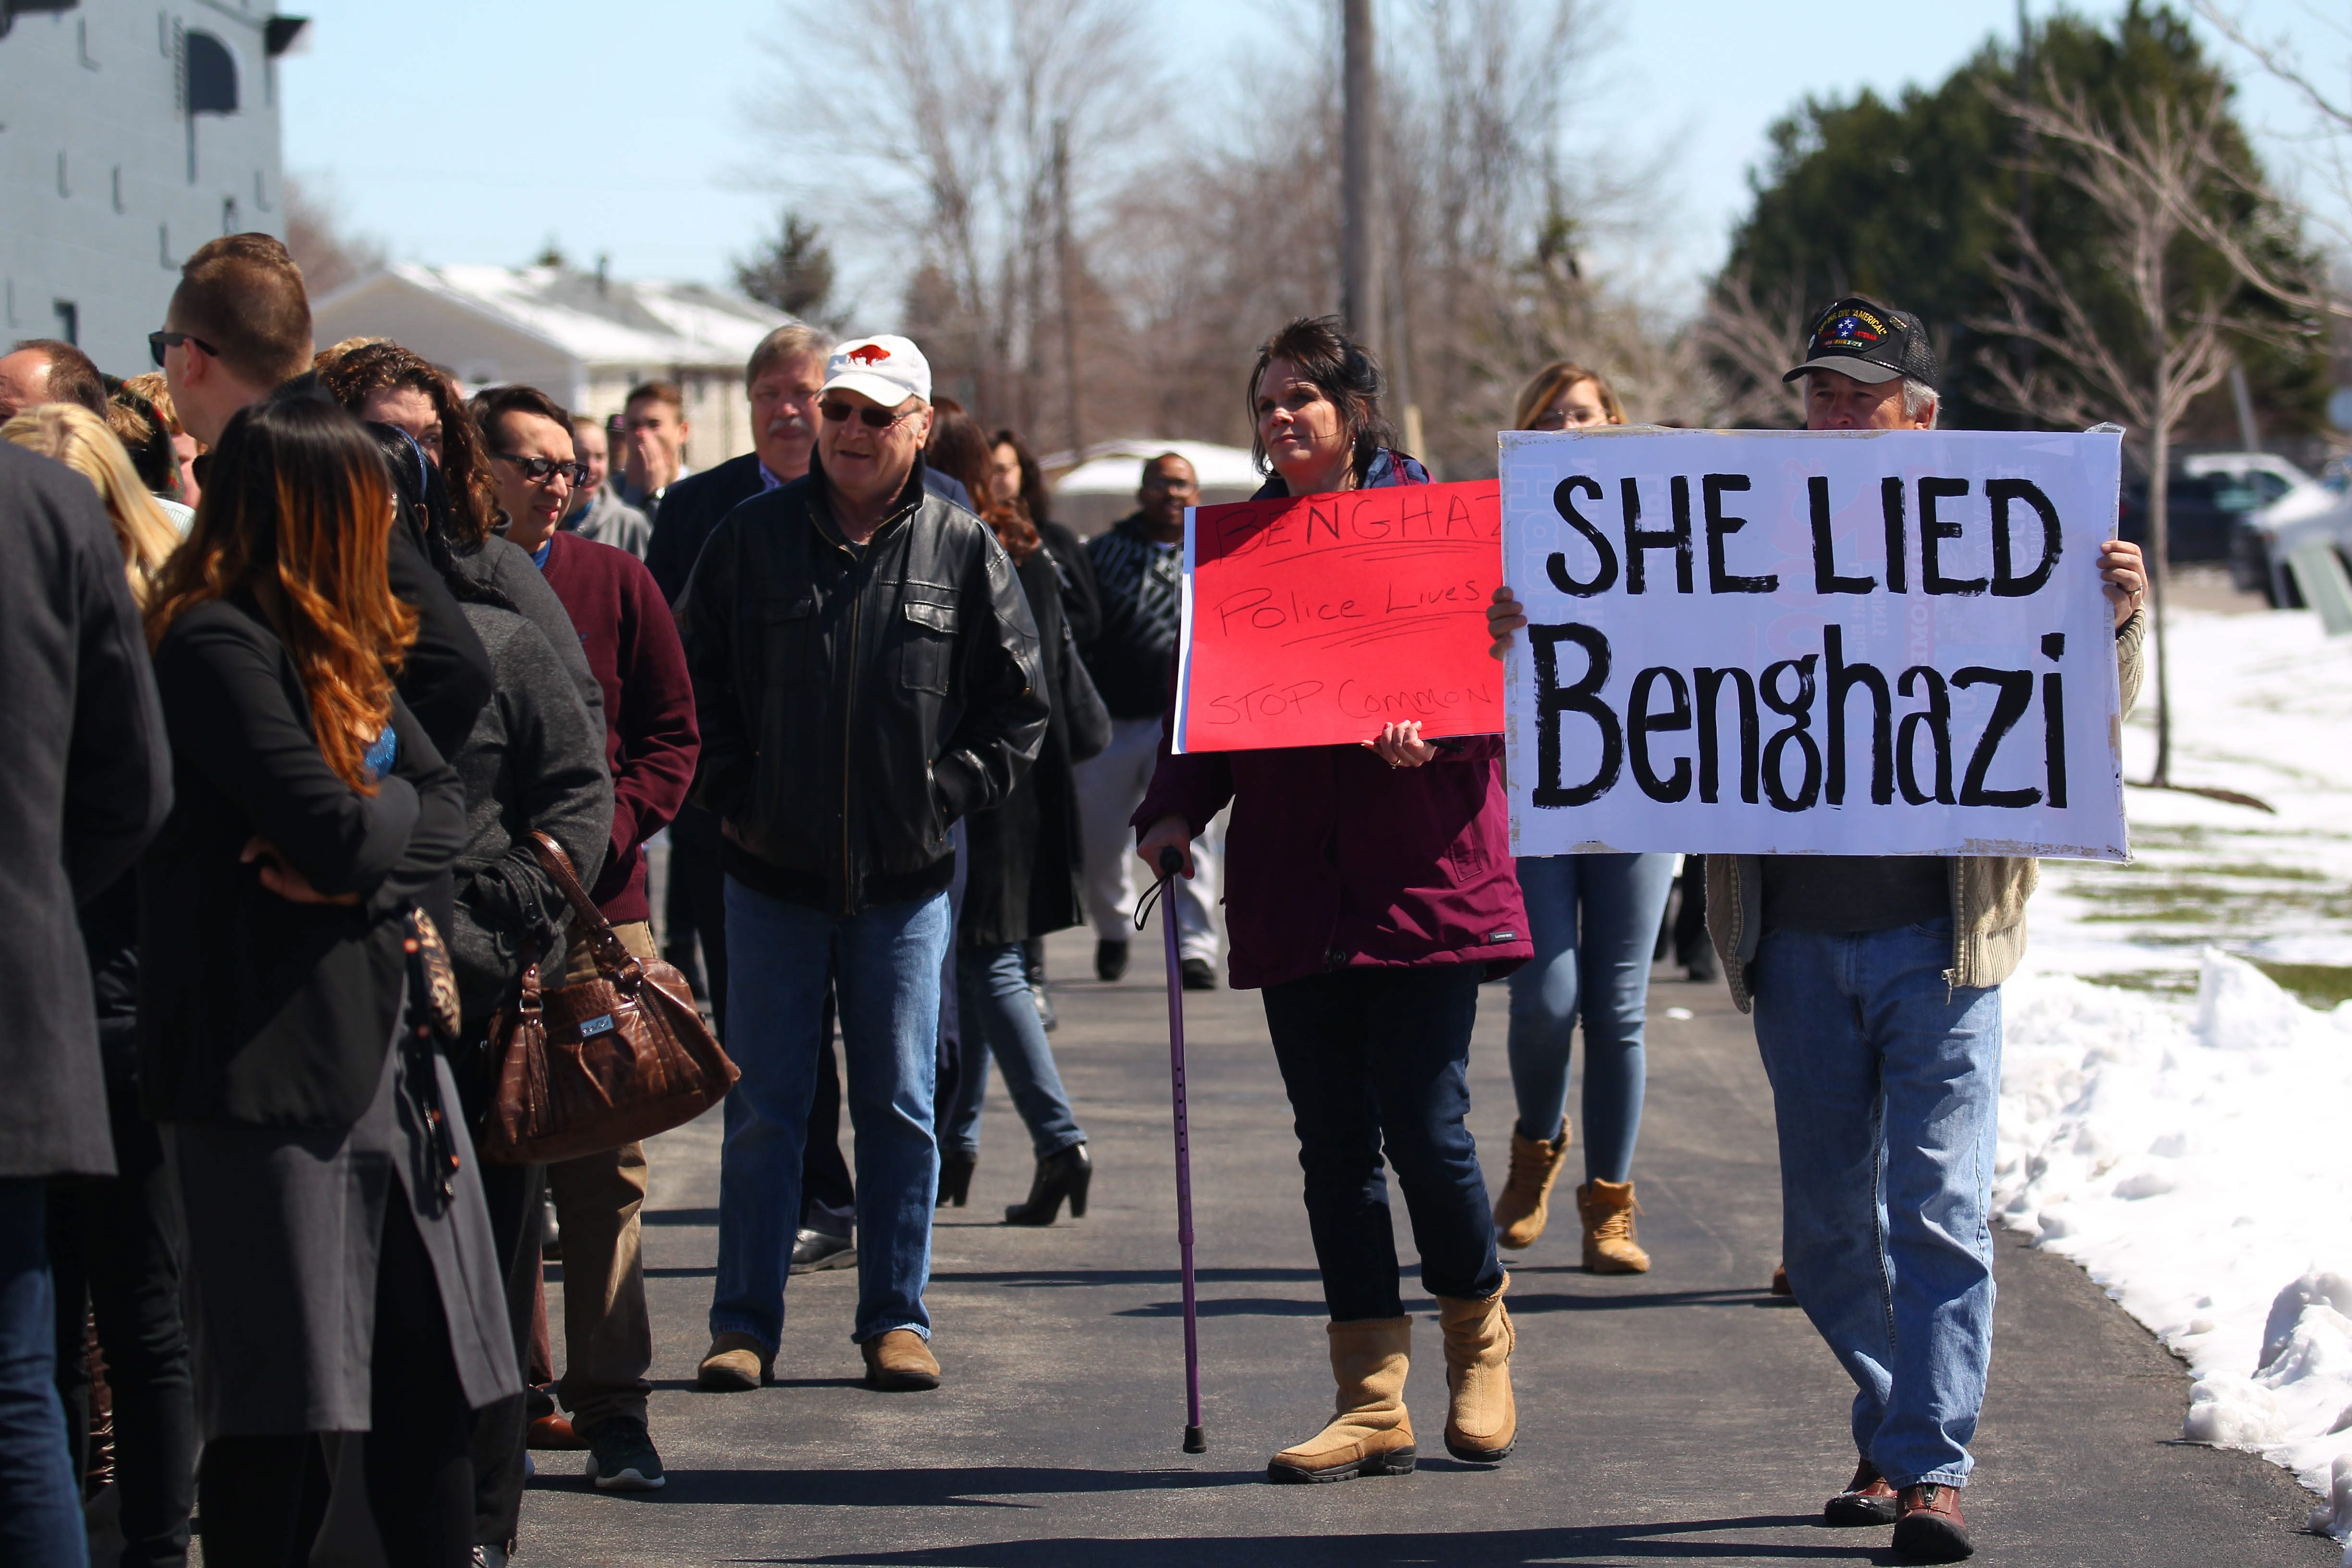 Protestors walk past Clinton supporters as they line up before former president Bill Clinton arrives for his appearance in Cheektowaga Tuesday, April 5, 2016.   (Mark Mulville/Buffalo News)